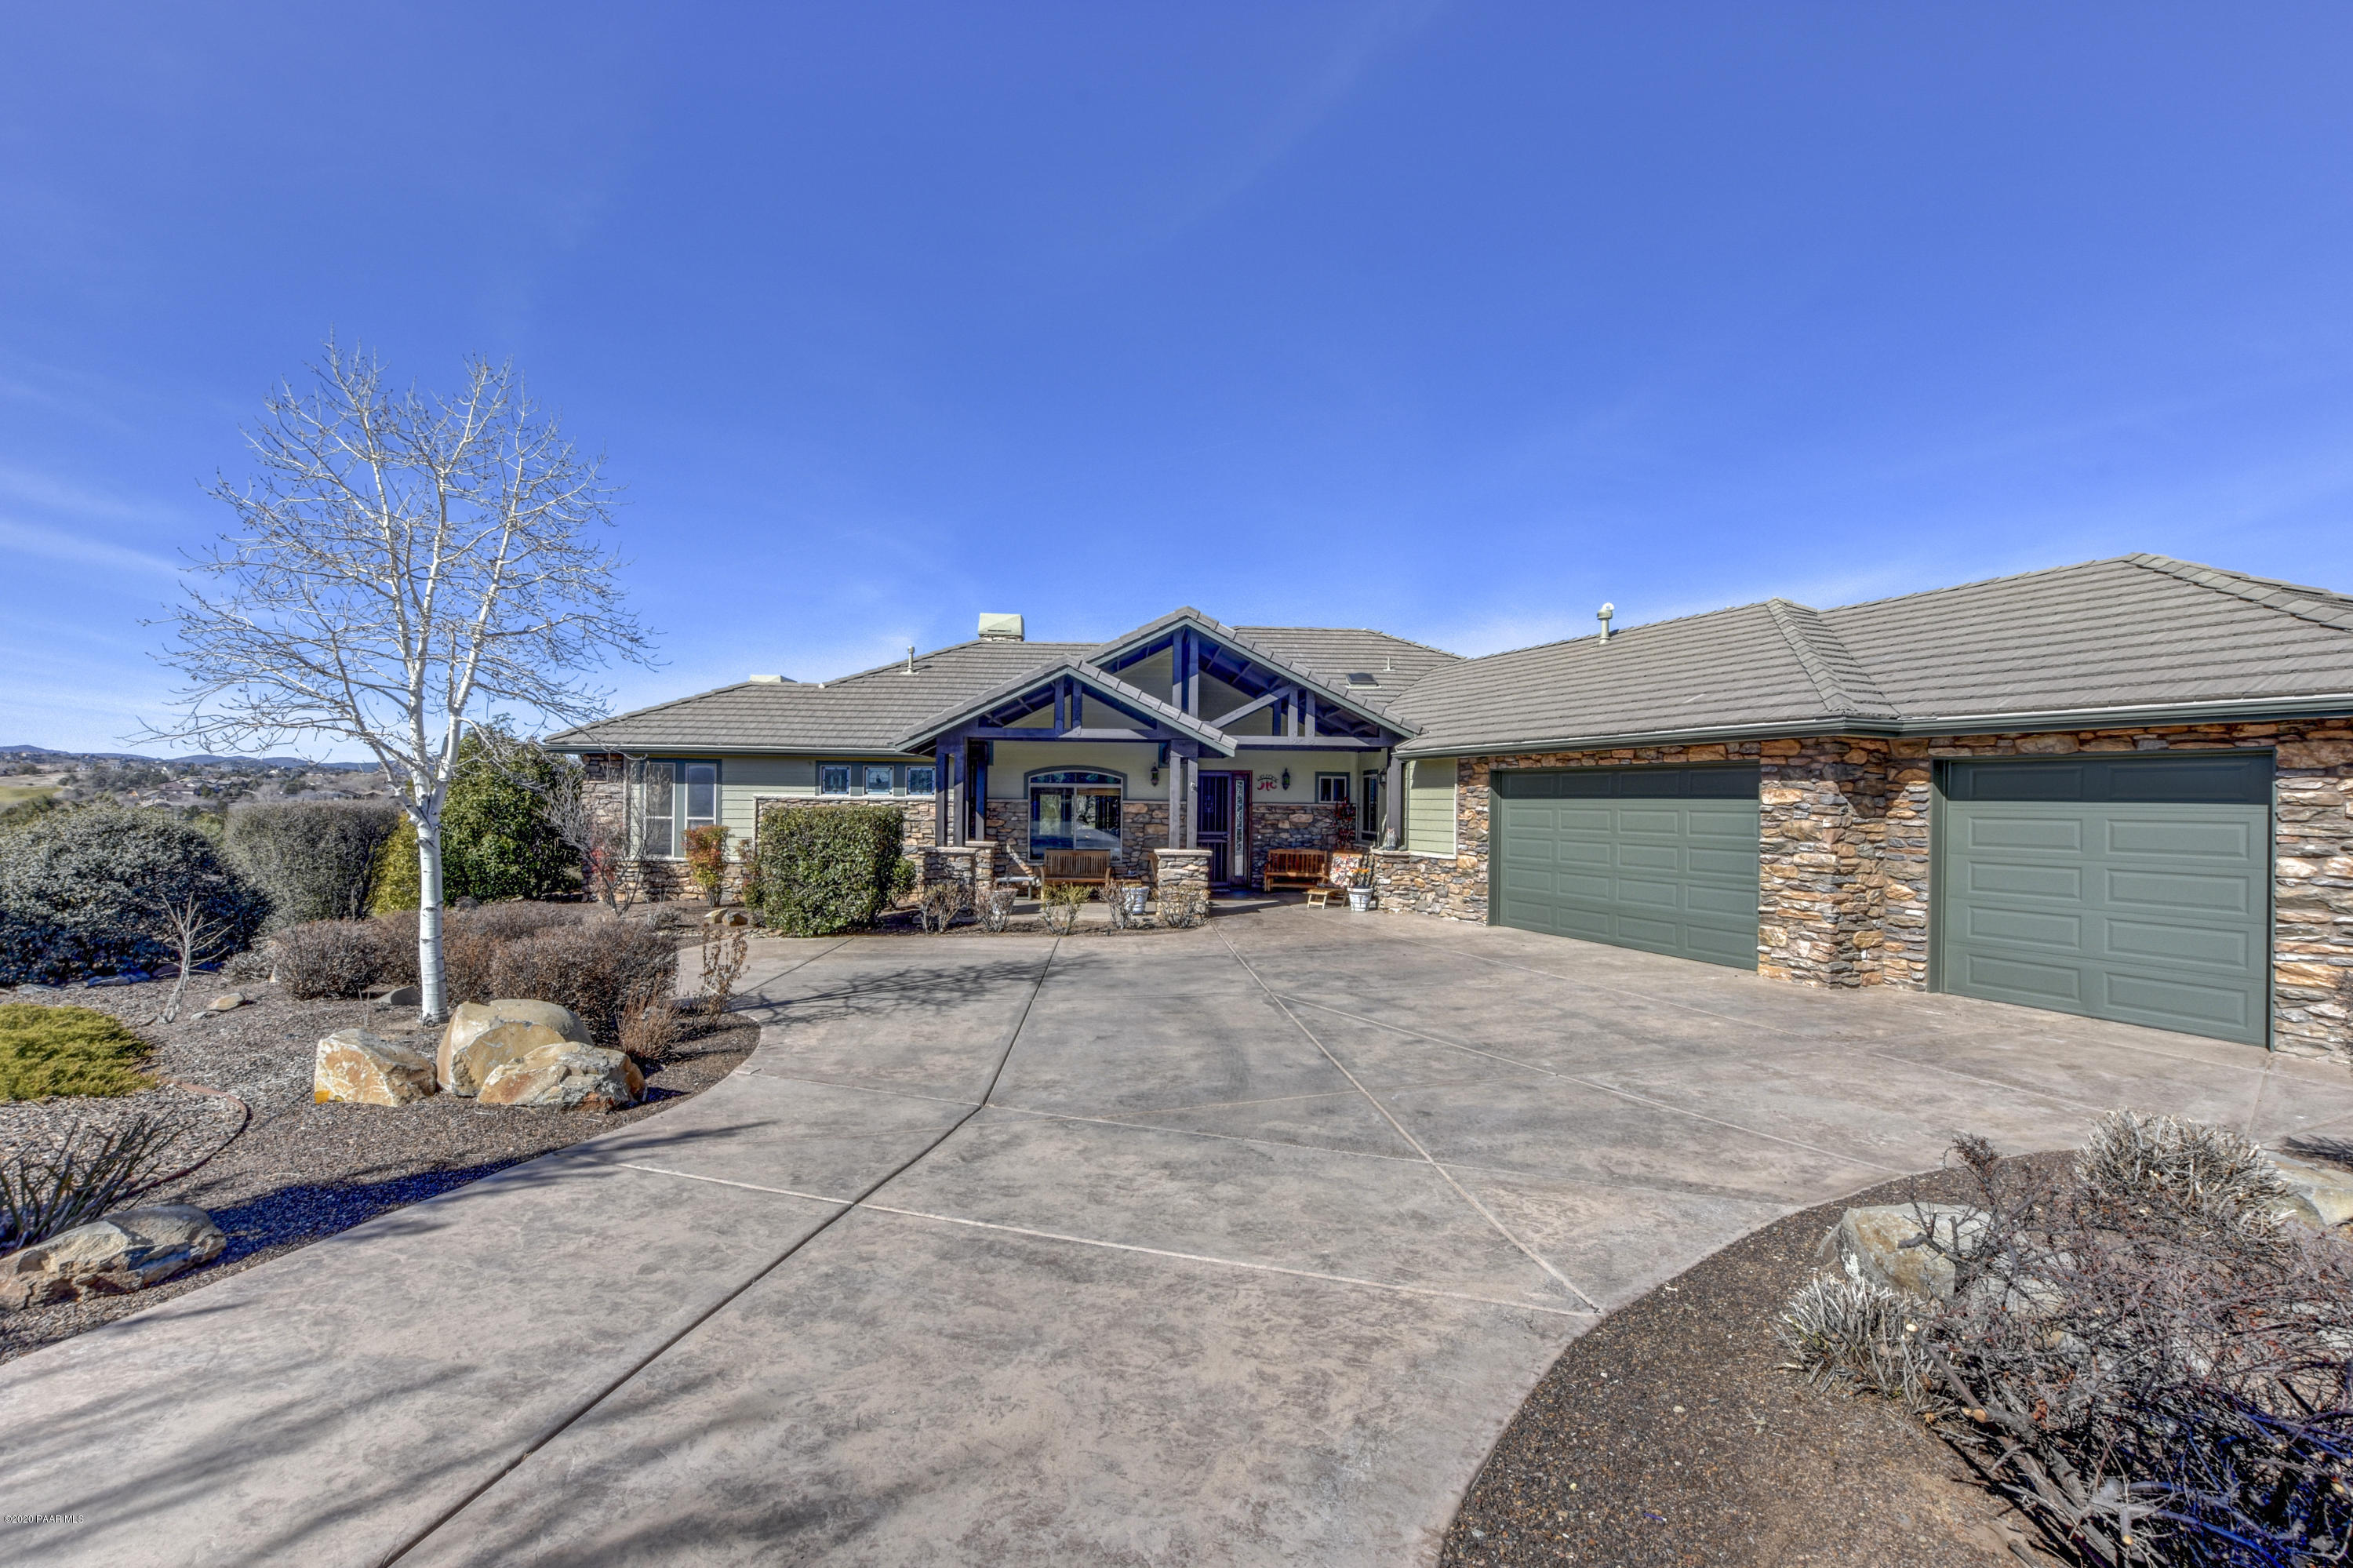 Photo of 1442 Northridge, Prescott, AZ 86301